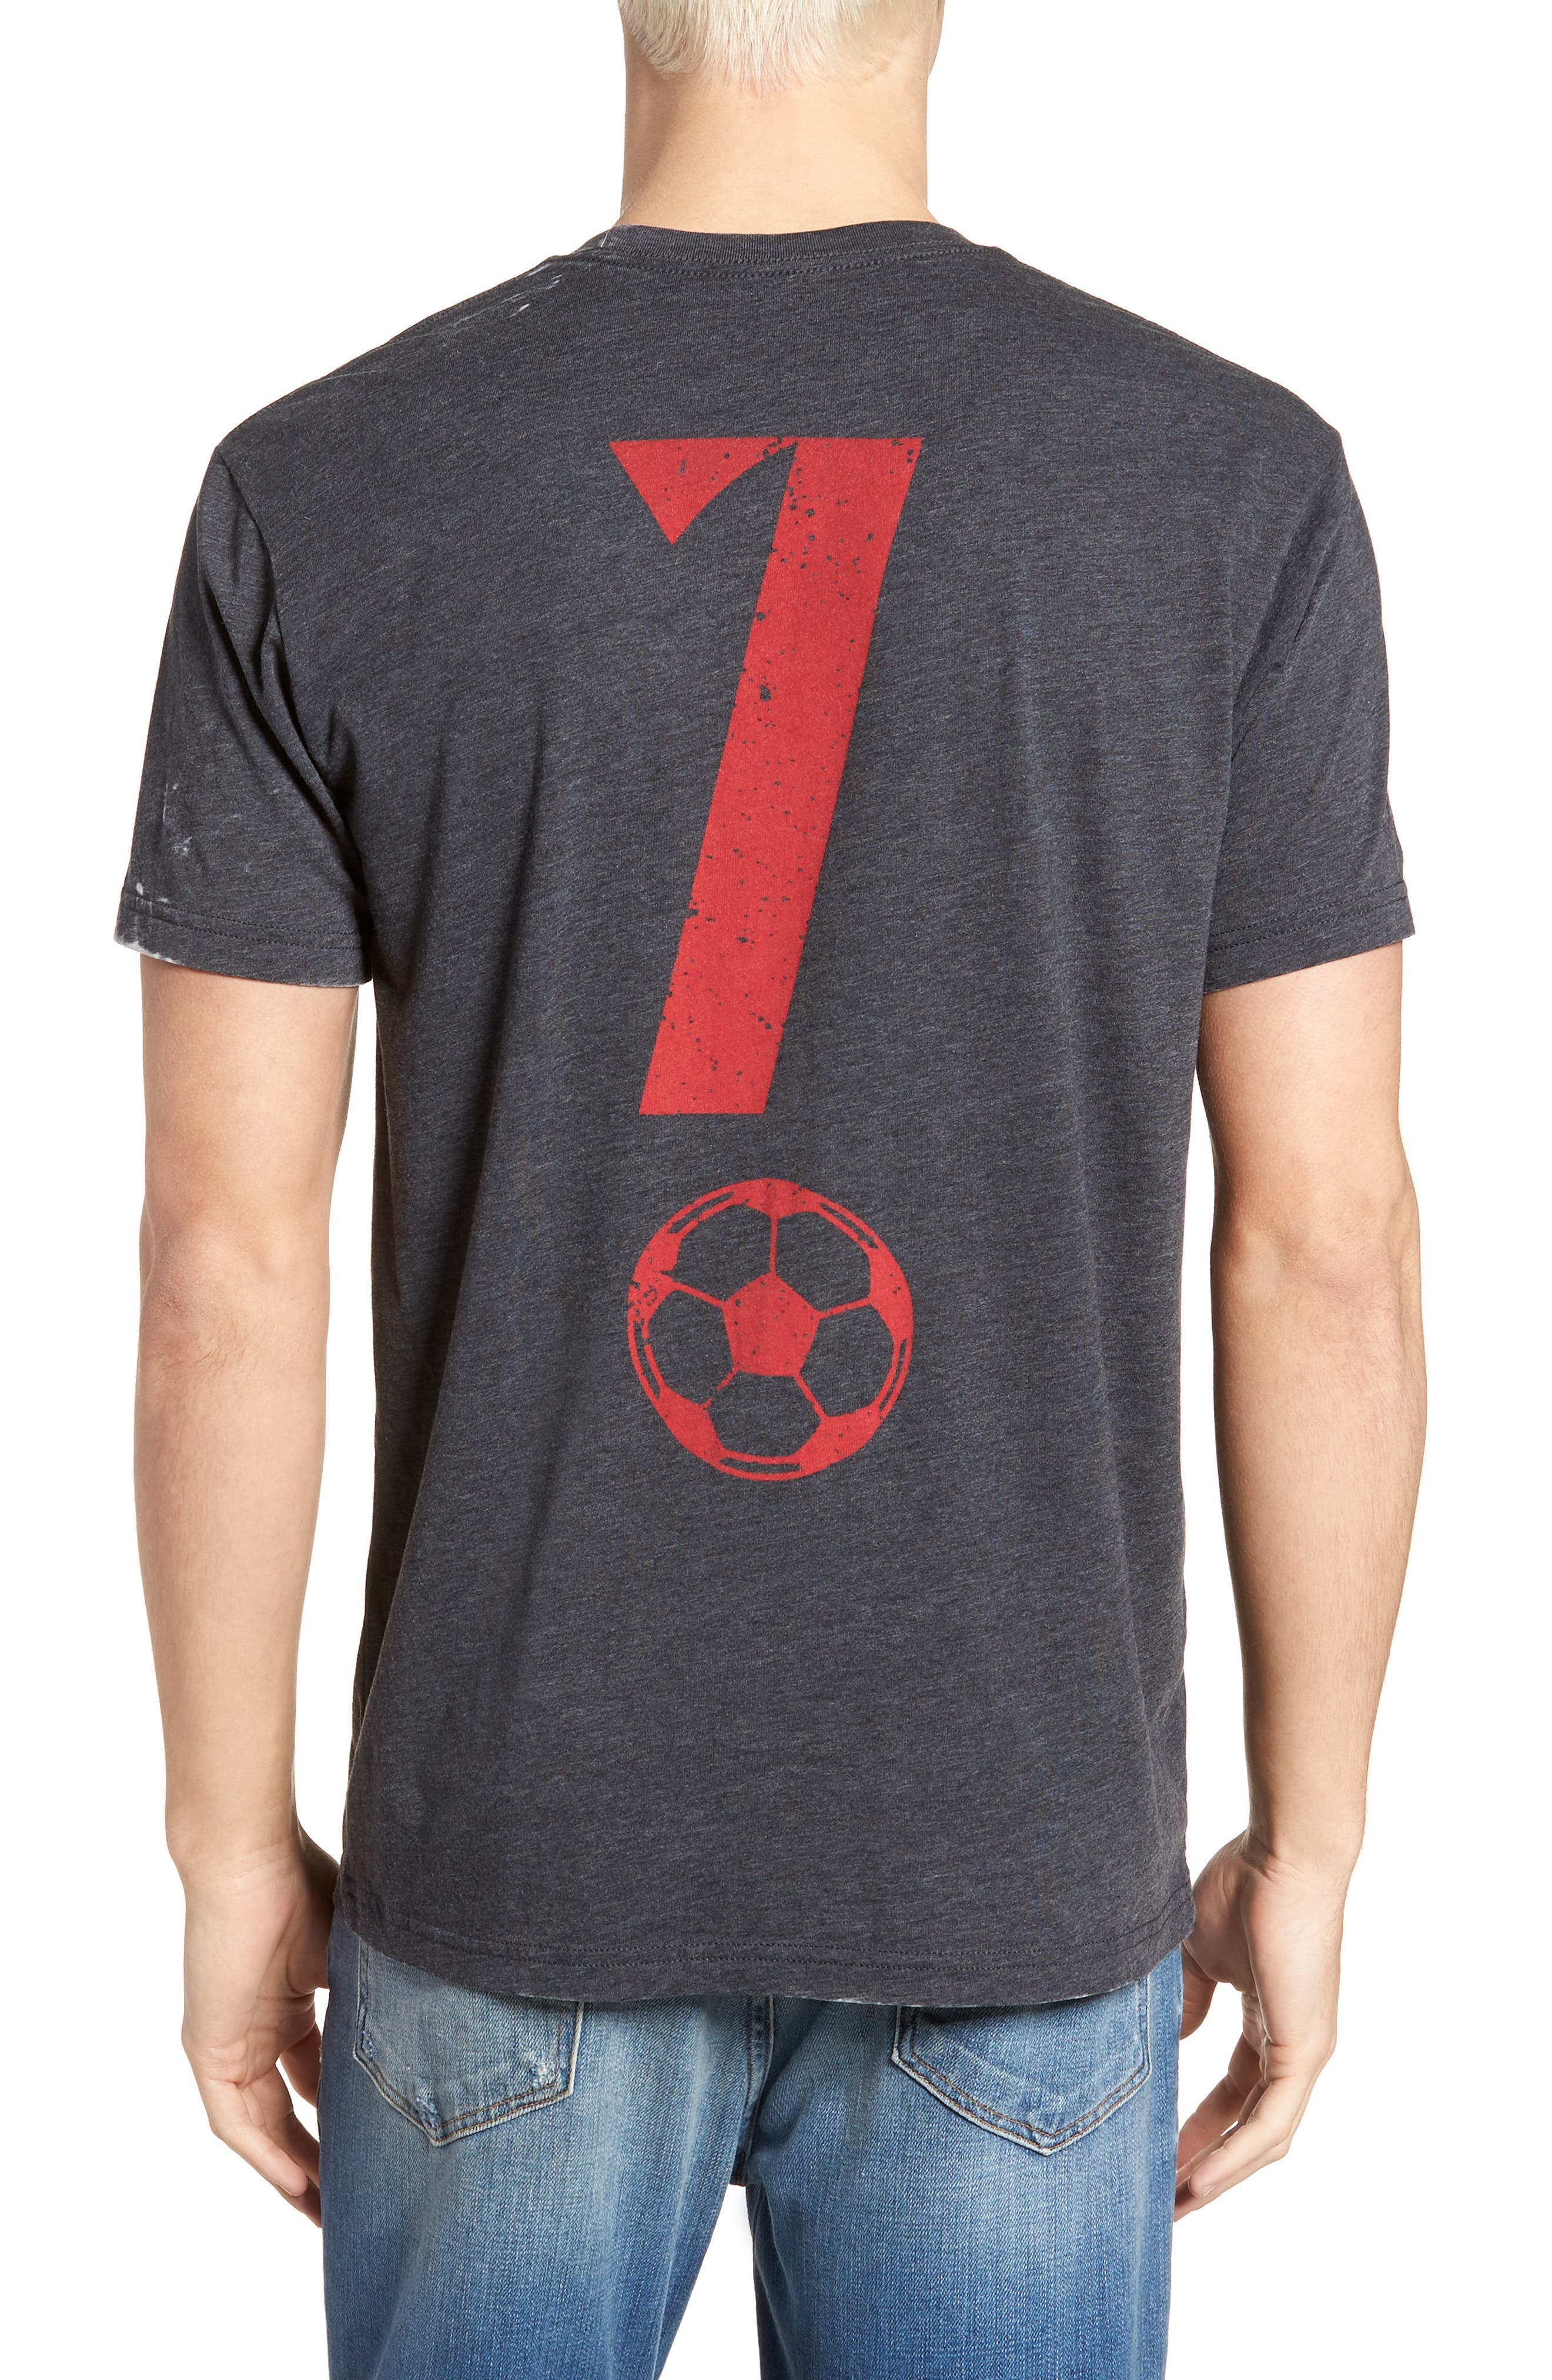 Portugal Jersey T-Shirt,                             Alternate thumbnail 2, color,                             Grey